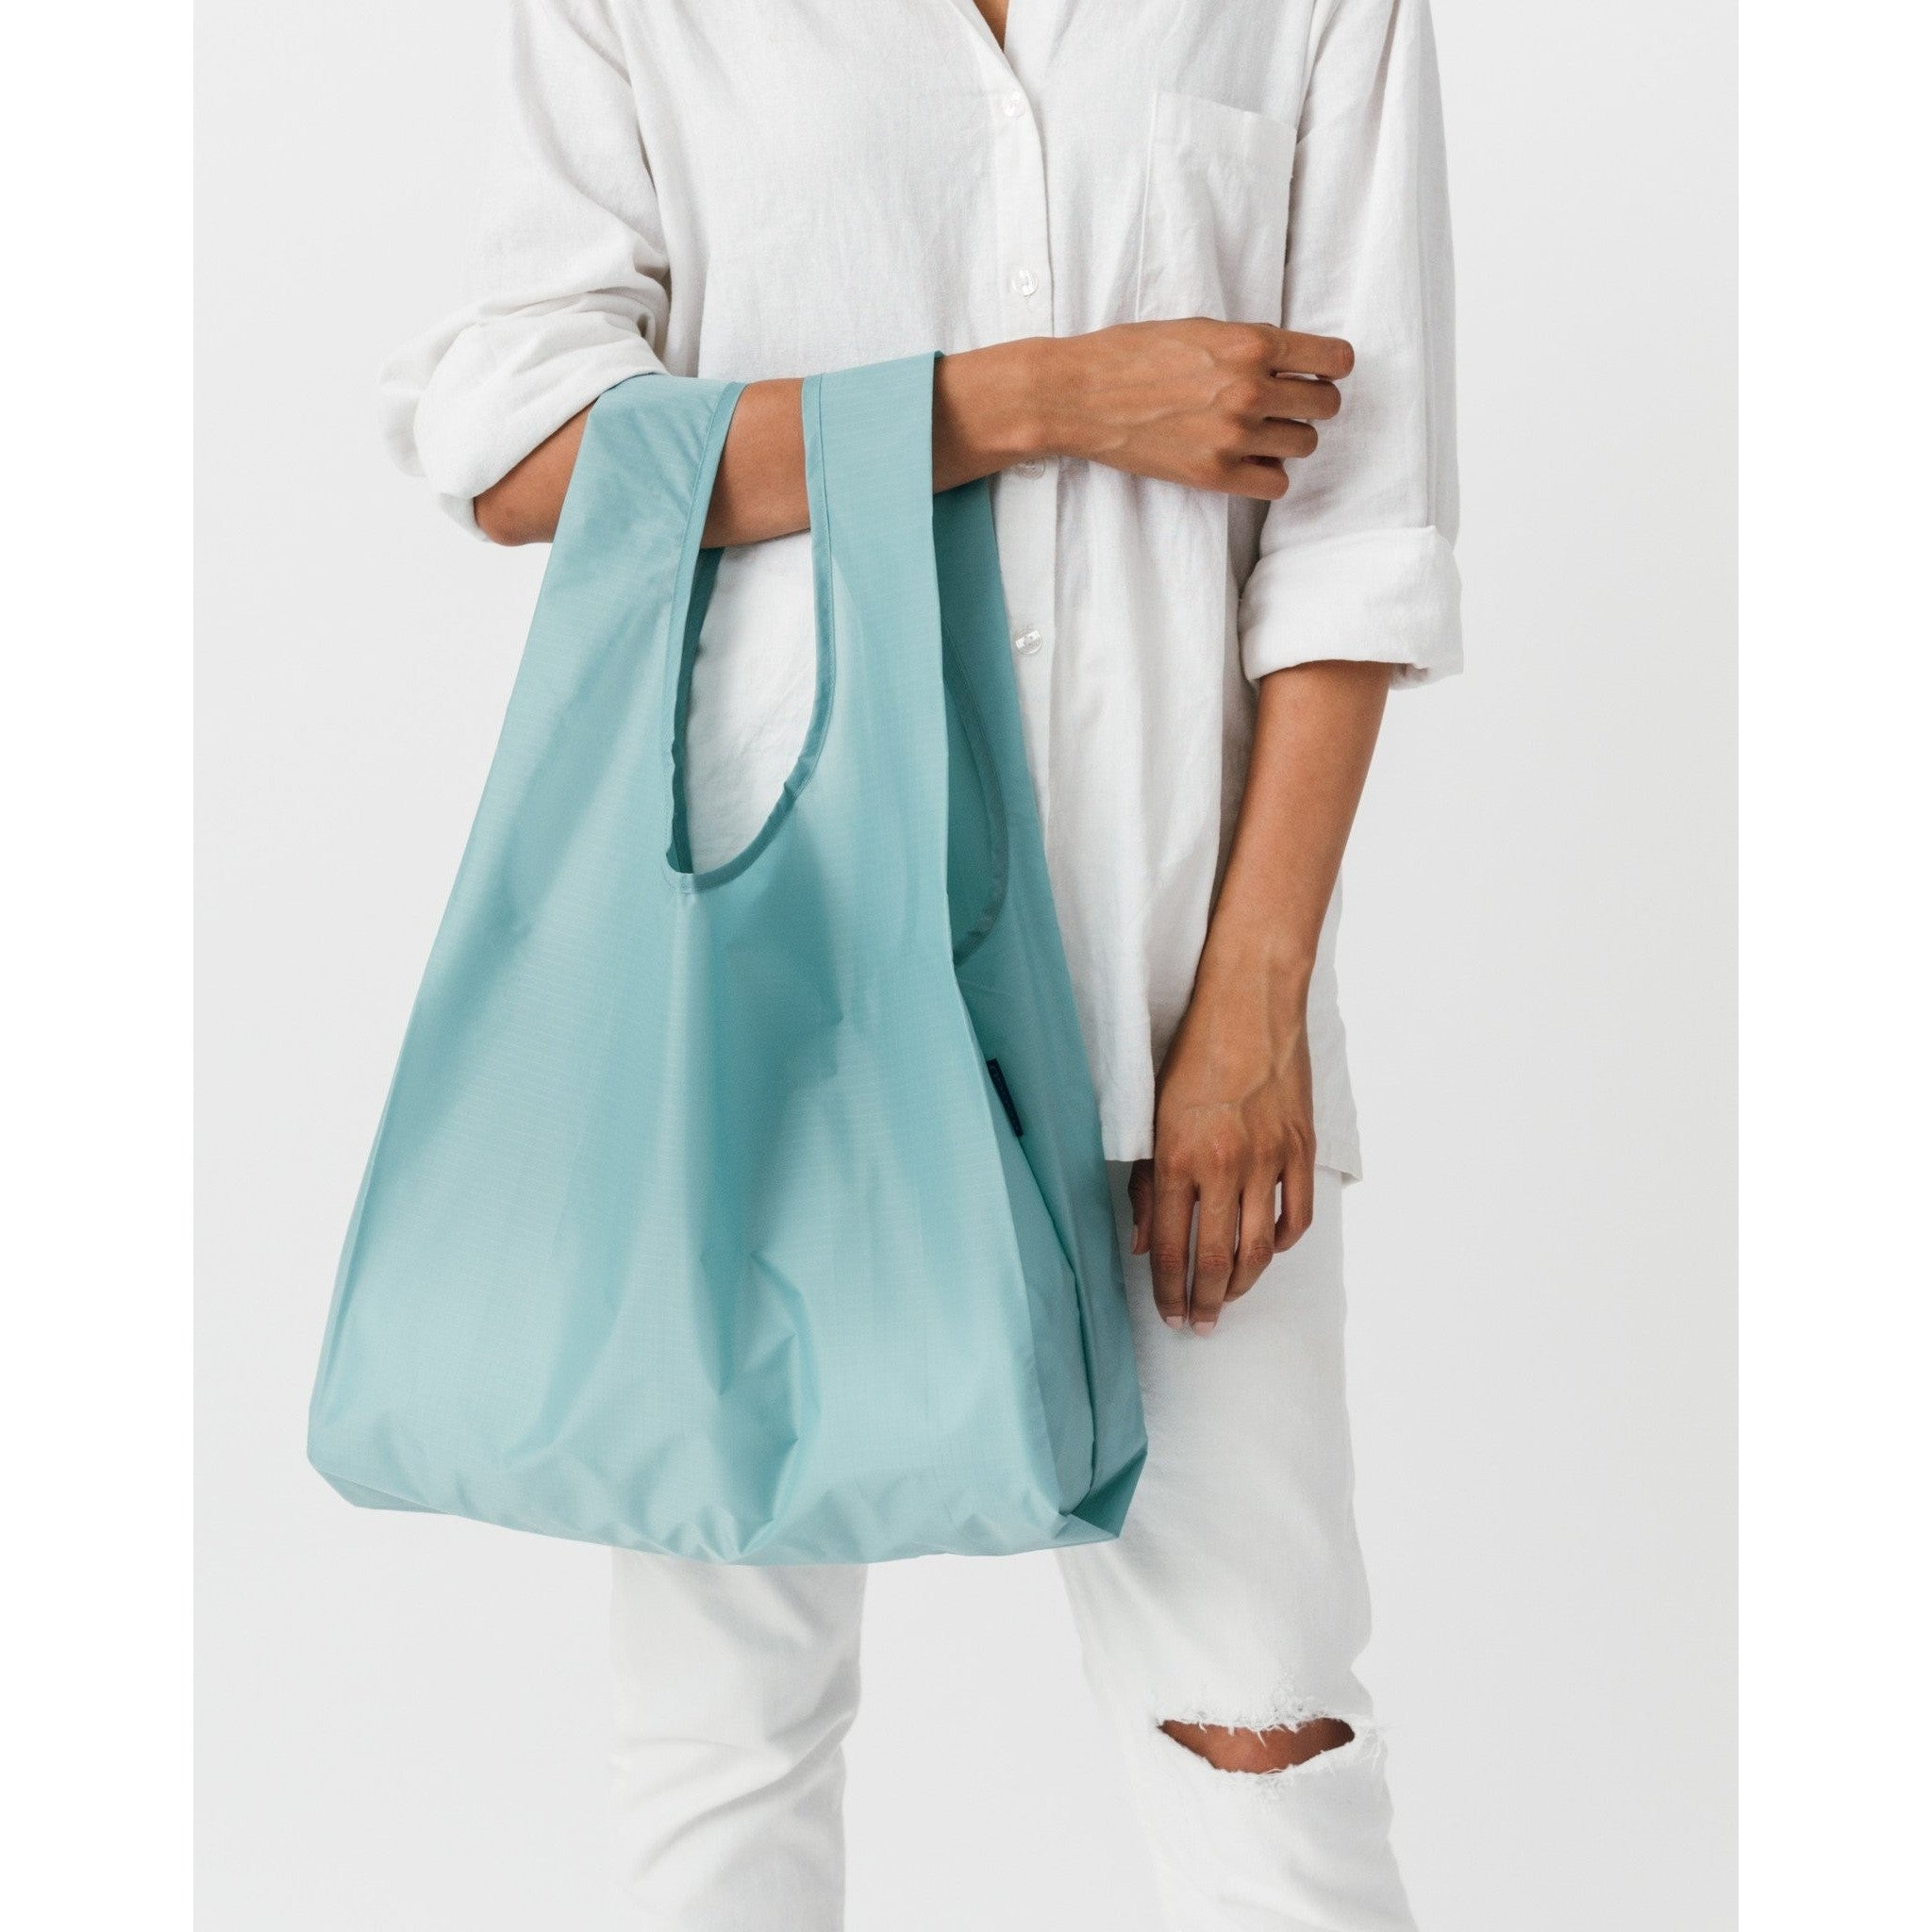 Reusable Bag - Teal - Boutique Wanderlust